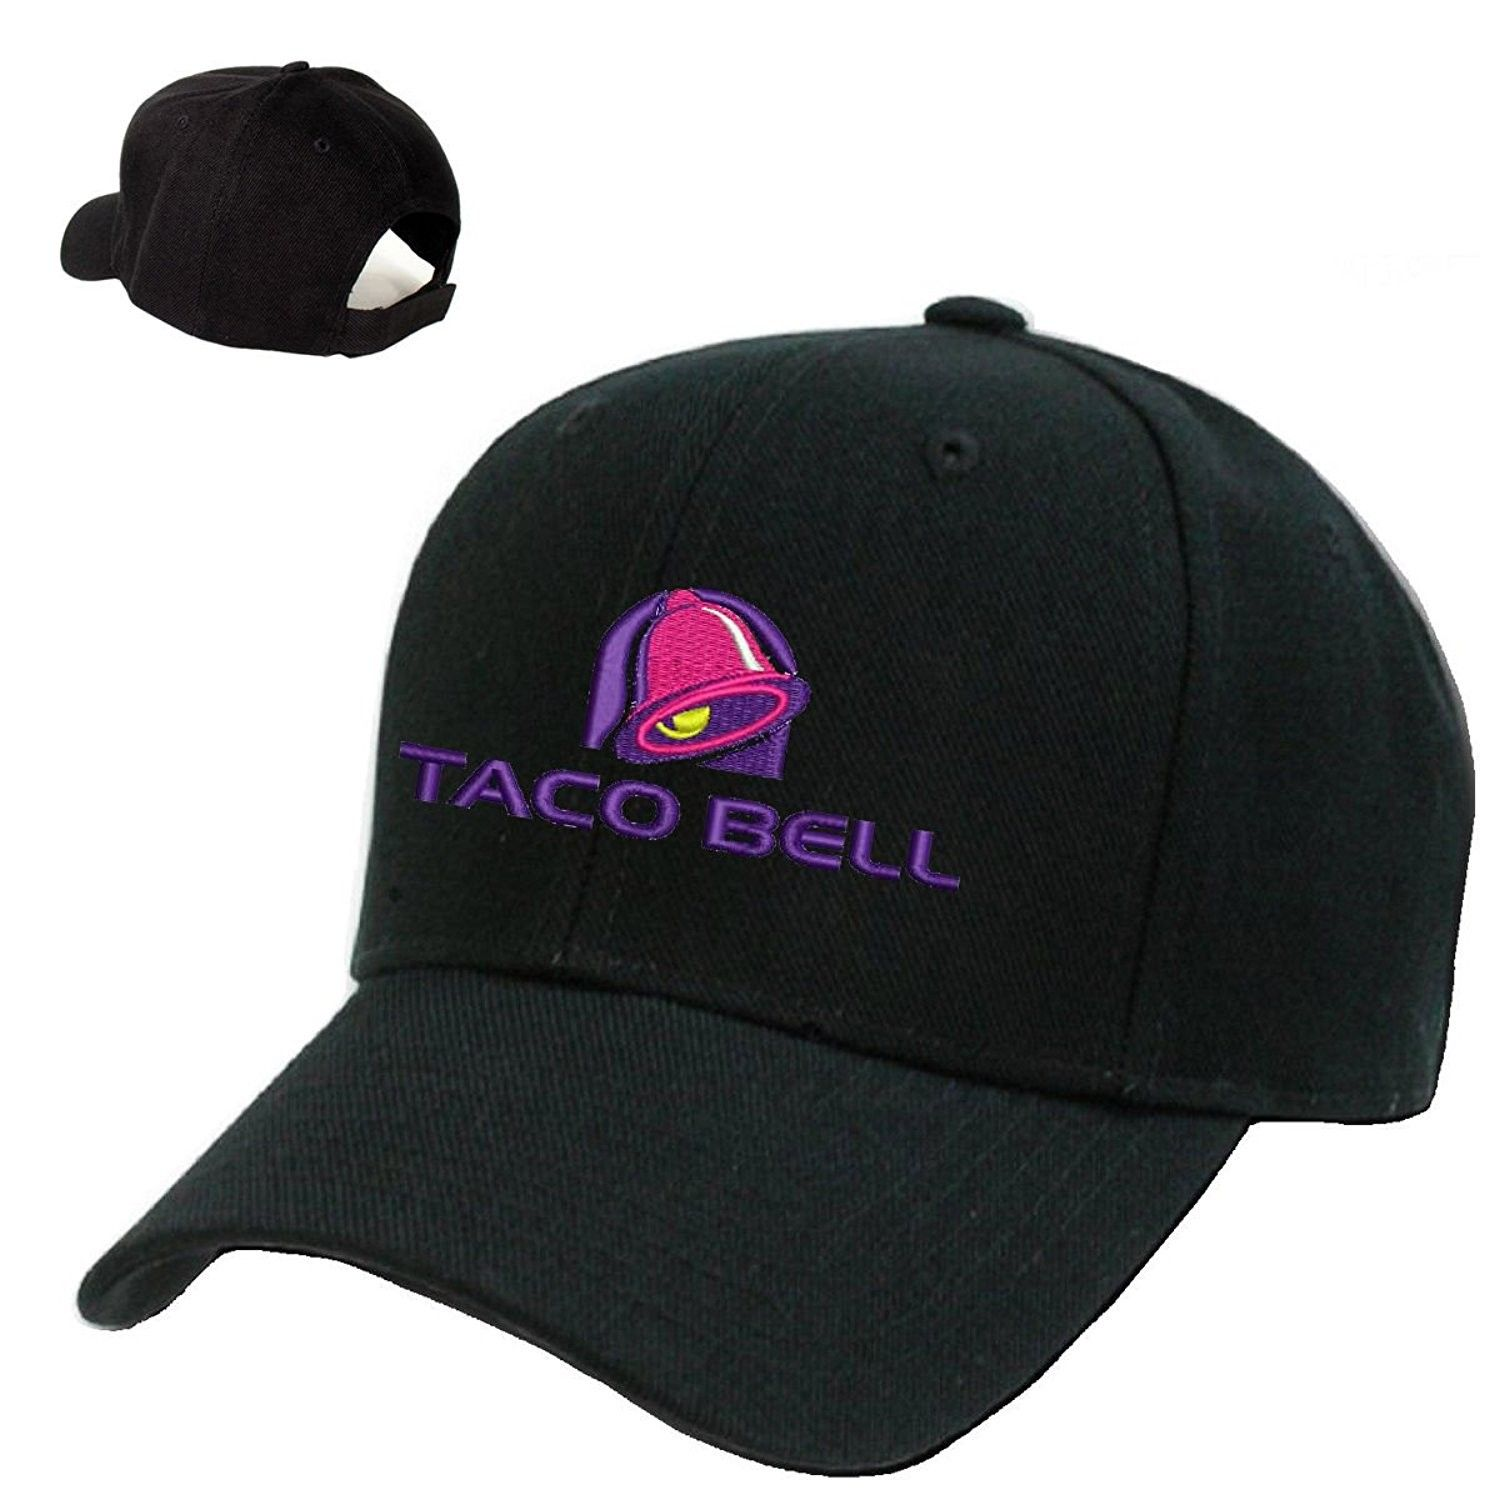 eae6c20a88044  TACO BELL  Black Embroidery Adjustable Baseball cap Souvenier Gift Unique  Hat - CS127AIBUGX - Hats   Caps